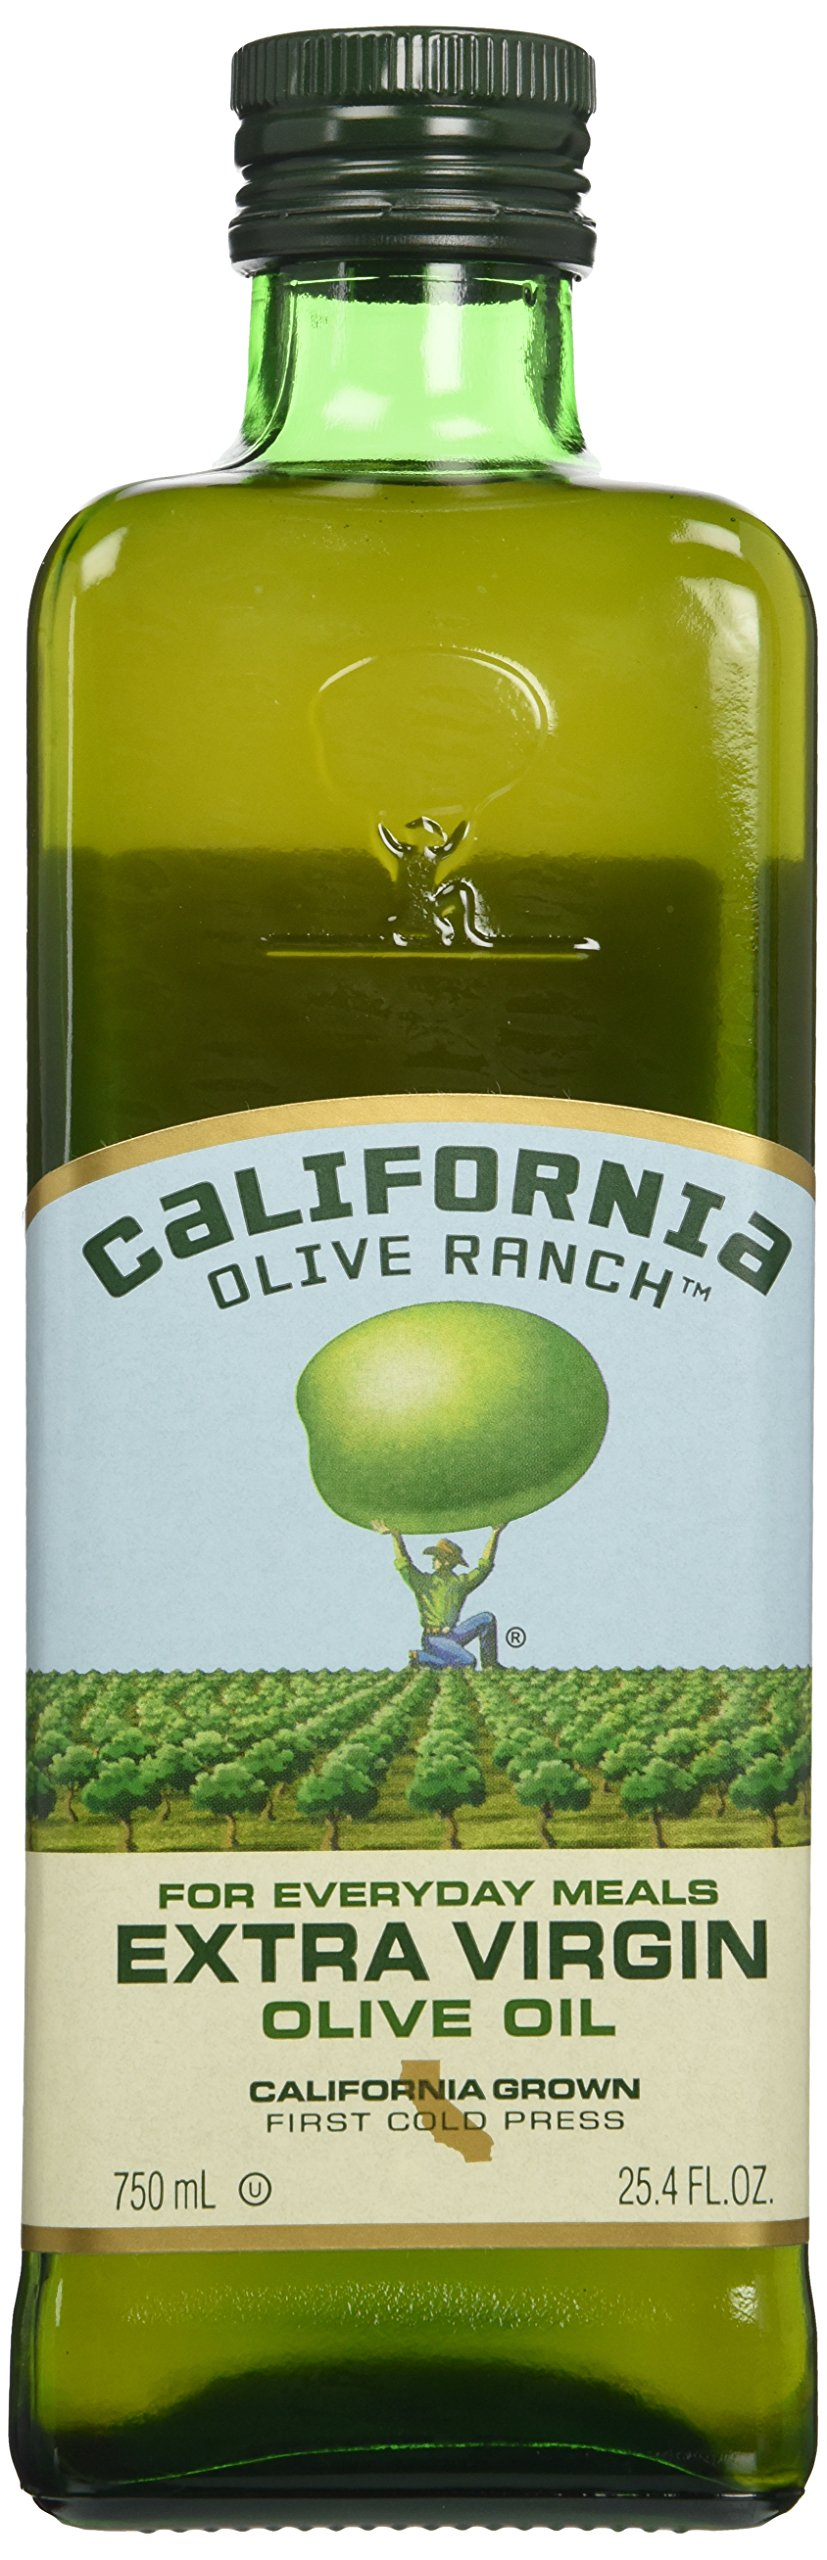 California Olive Ranch Everyday Extra Virgin Olive Oil - 25.4 oz